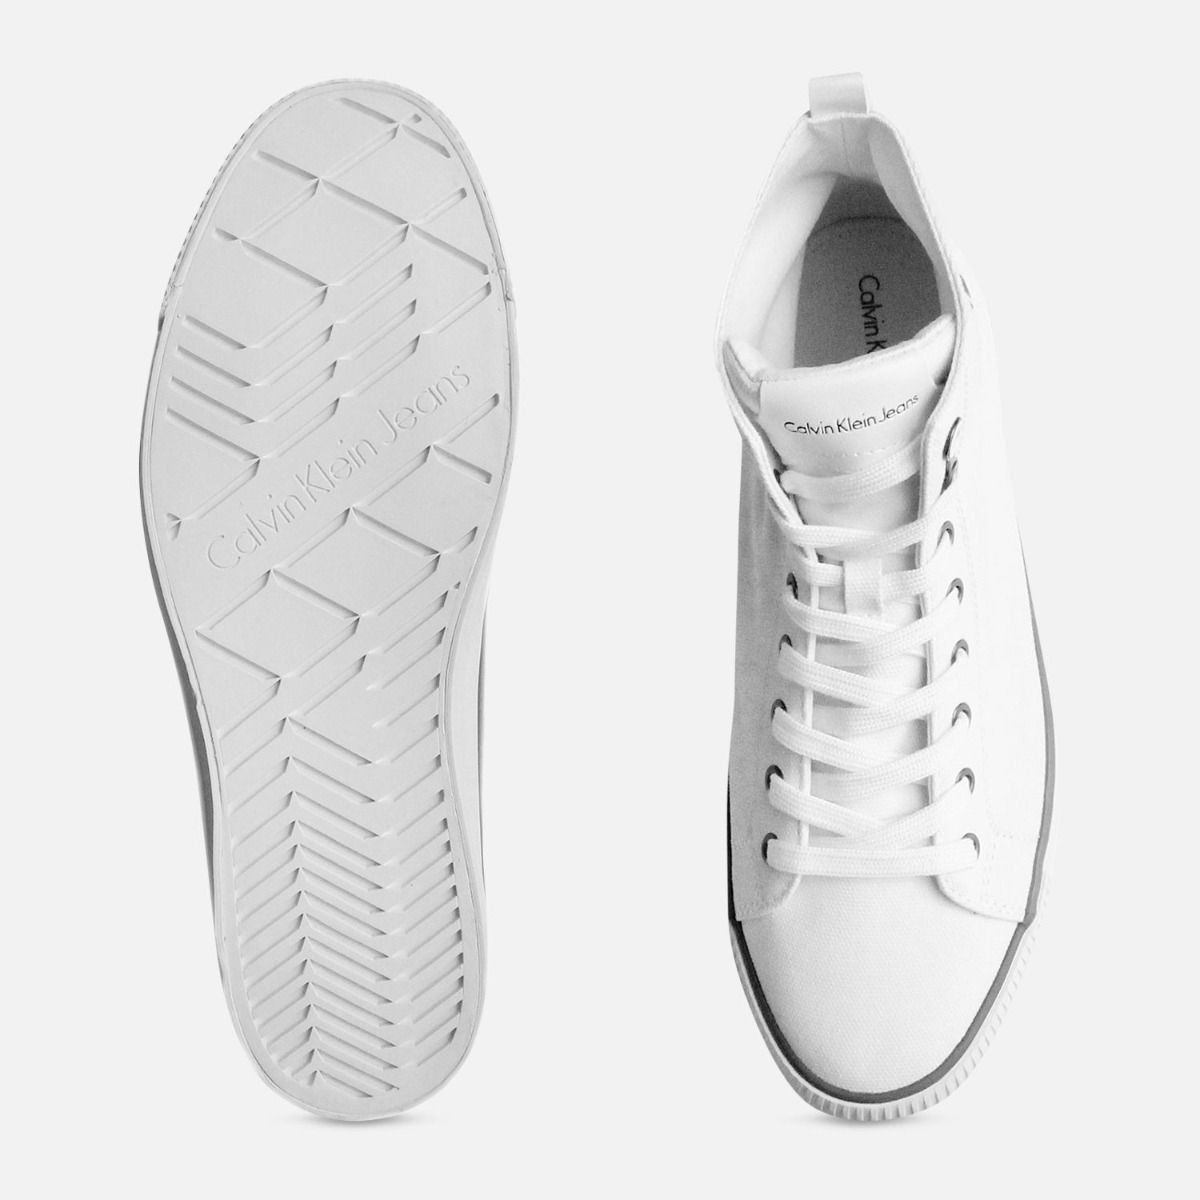 White Canvas Arthur Hi Tops by Calvin Klein Sneakers